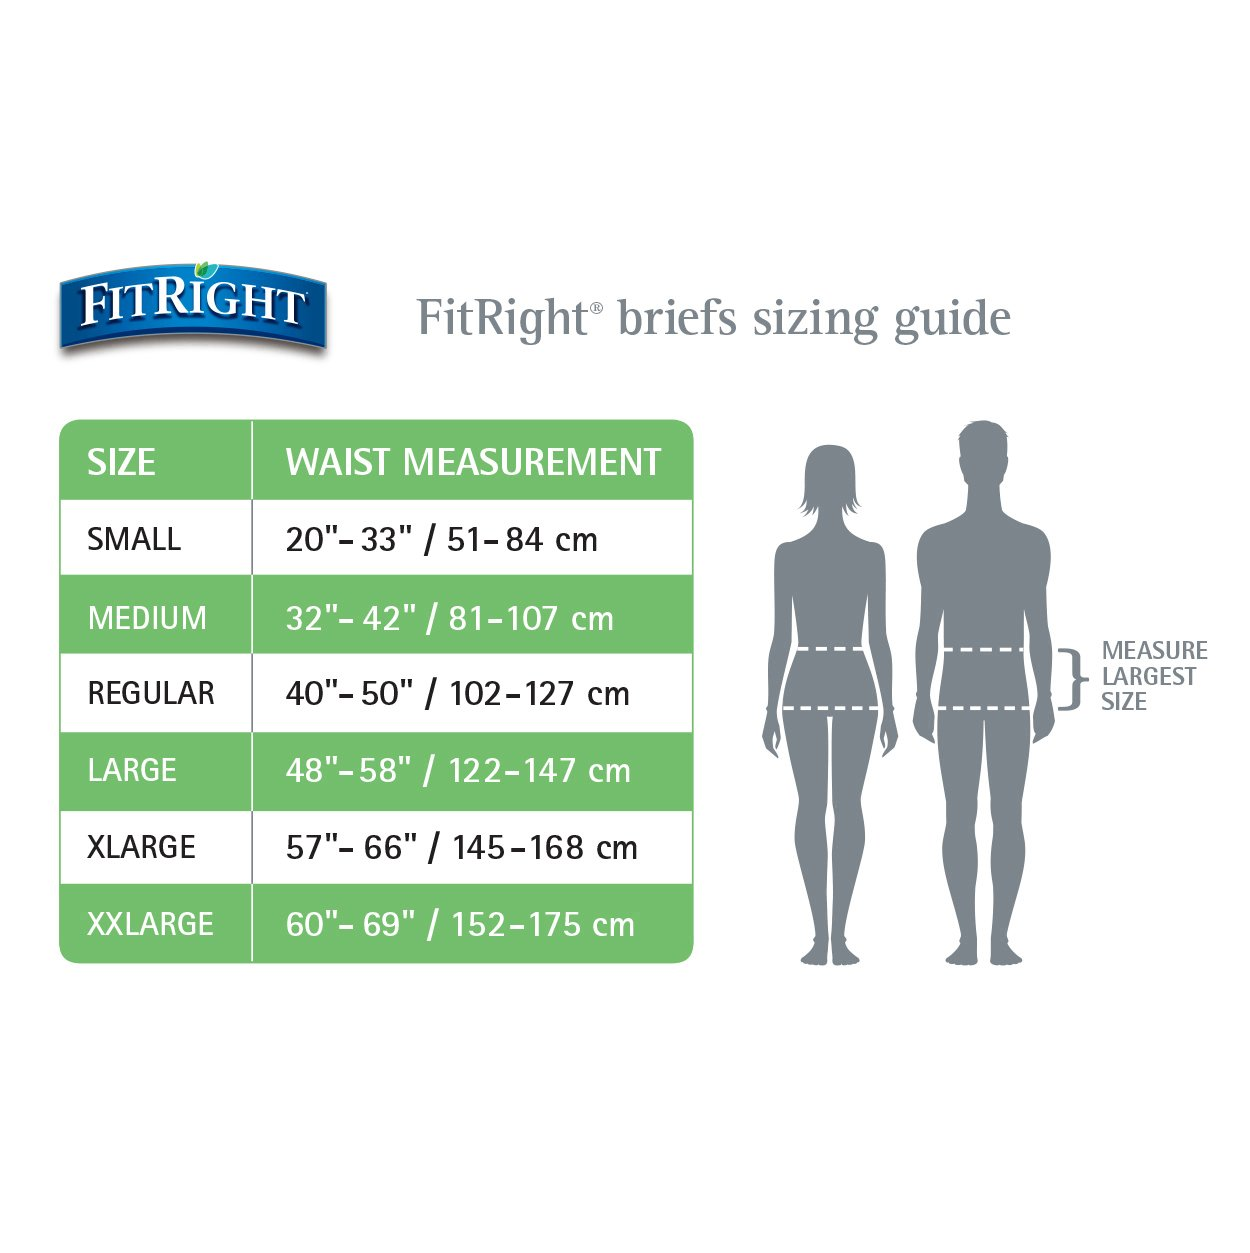 Amazon.com: Medline FitRight Extra Adult Briefs with Tabs, Moderate Absorbency, X-Large, 57